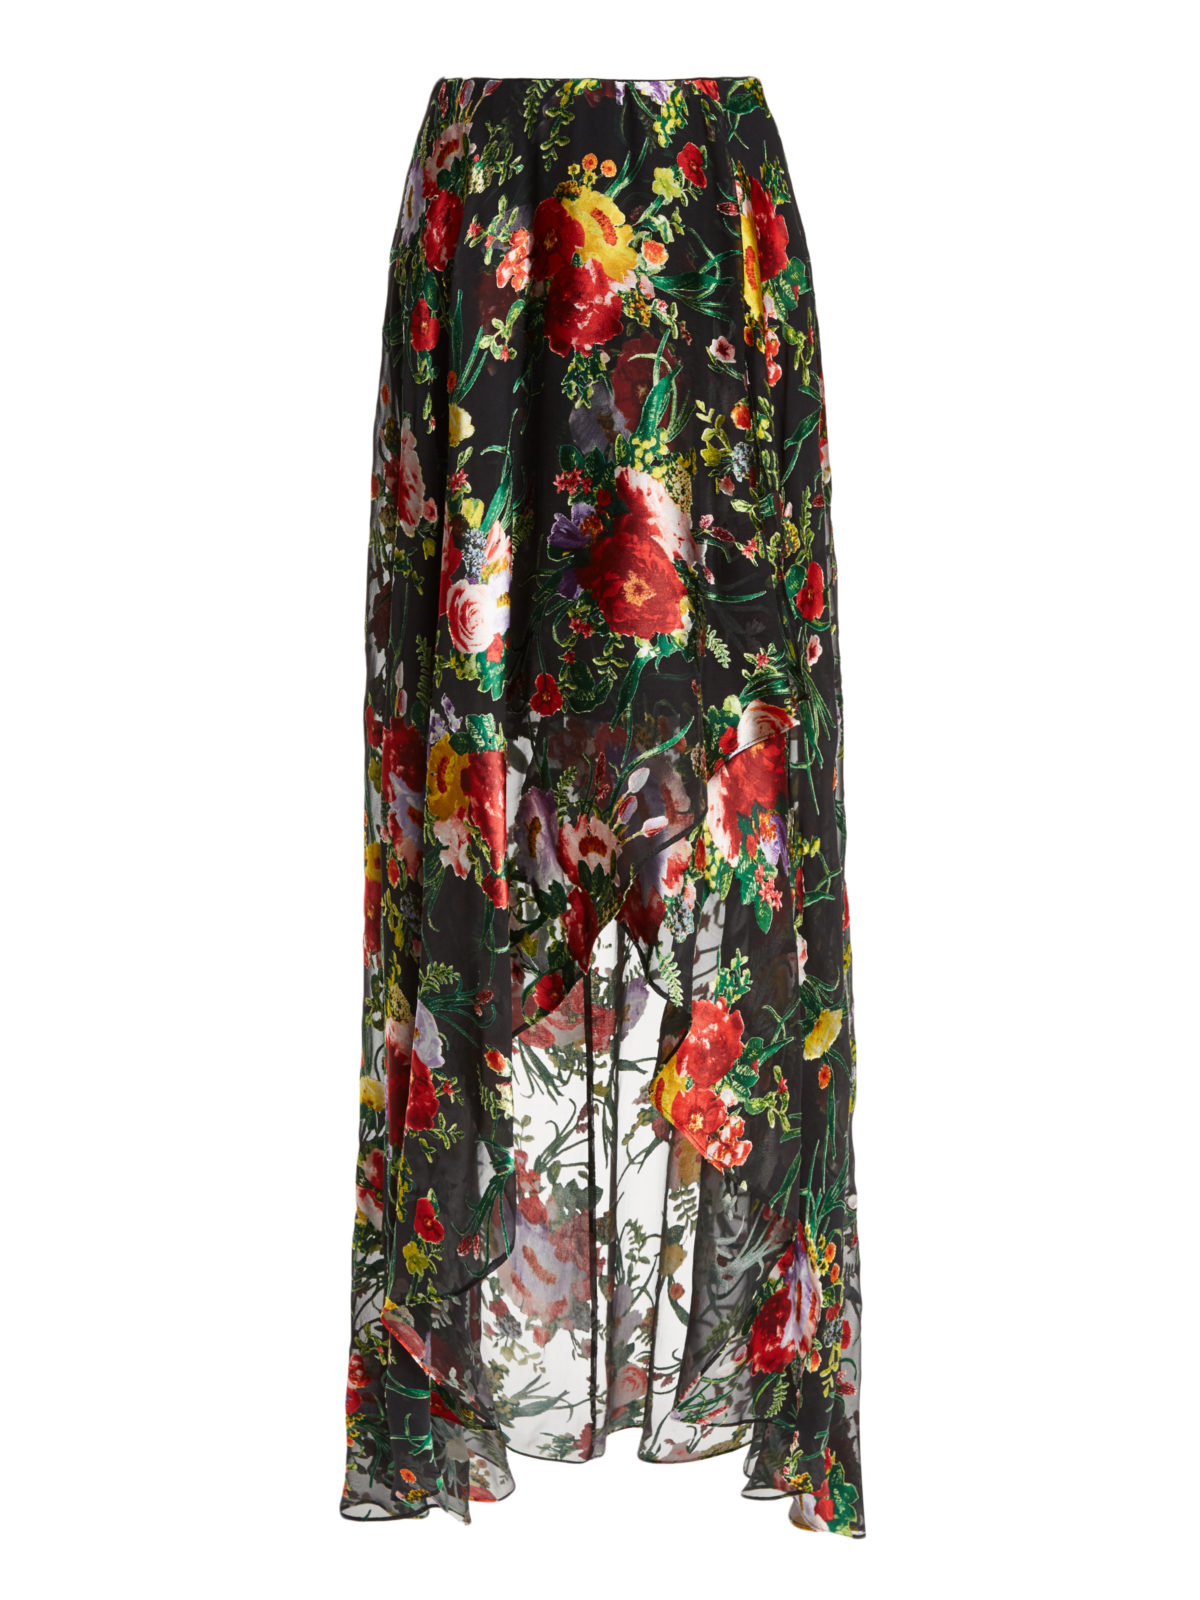 Blooming Bouquet Skirt Alice & Olivia